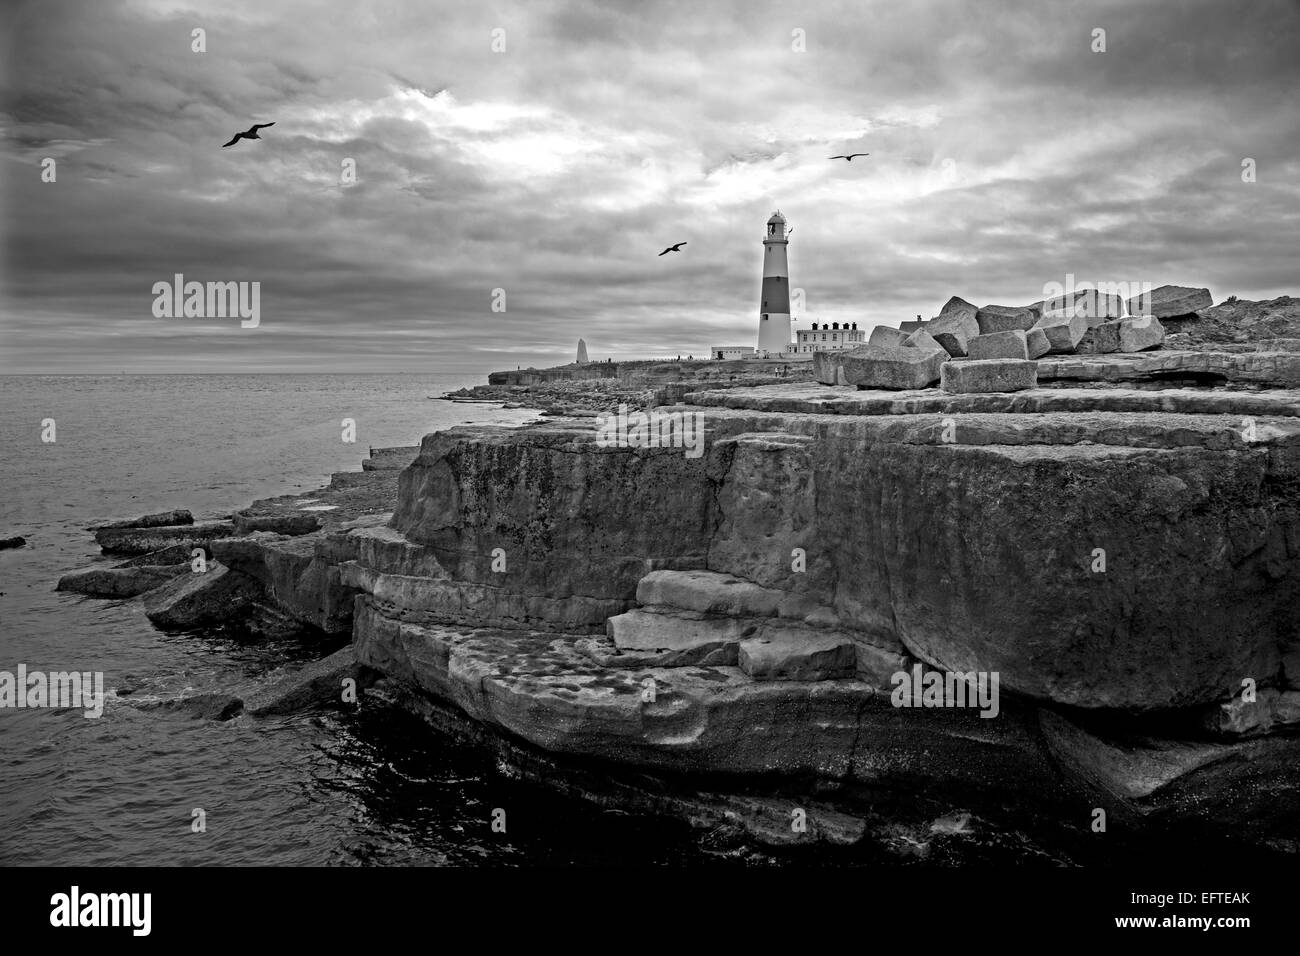 Portland Bill lighthouse looking south west as a black and white image - Stock Image